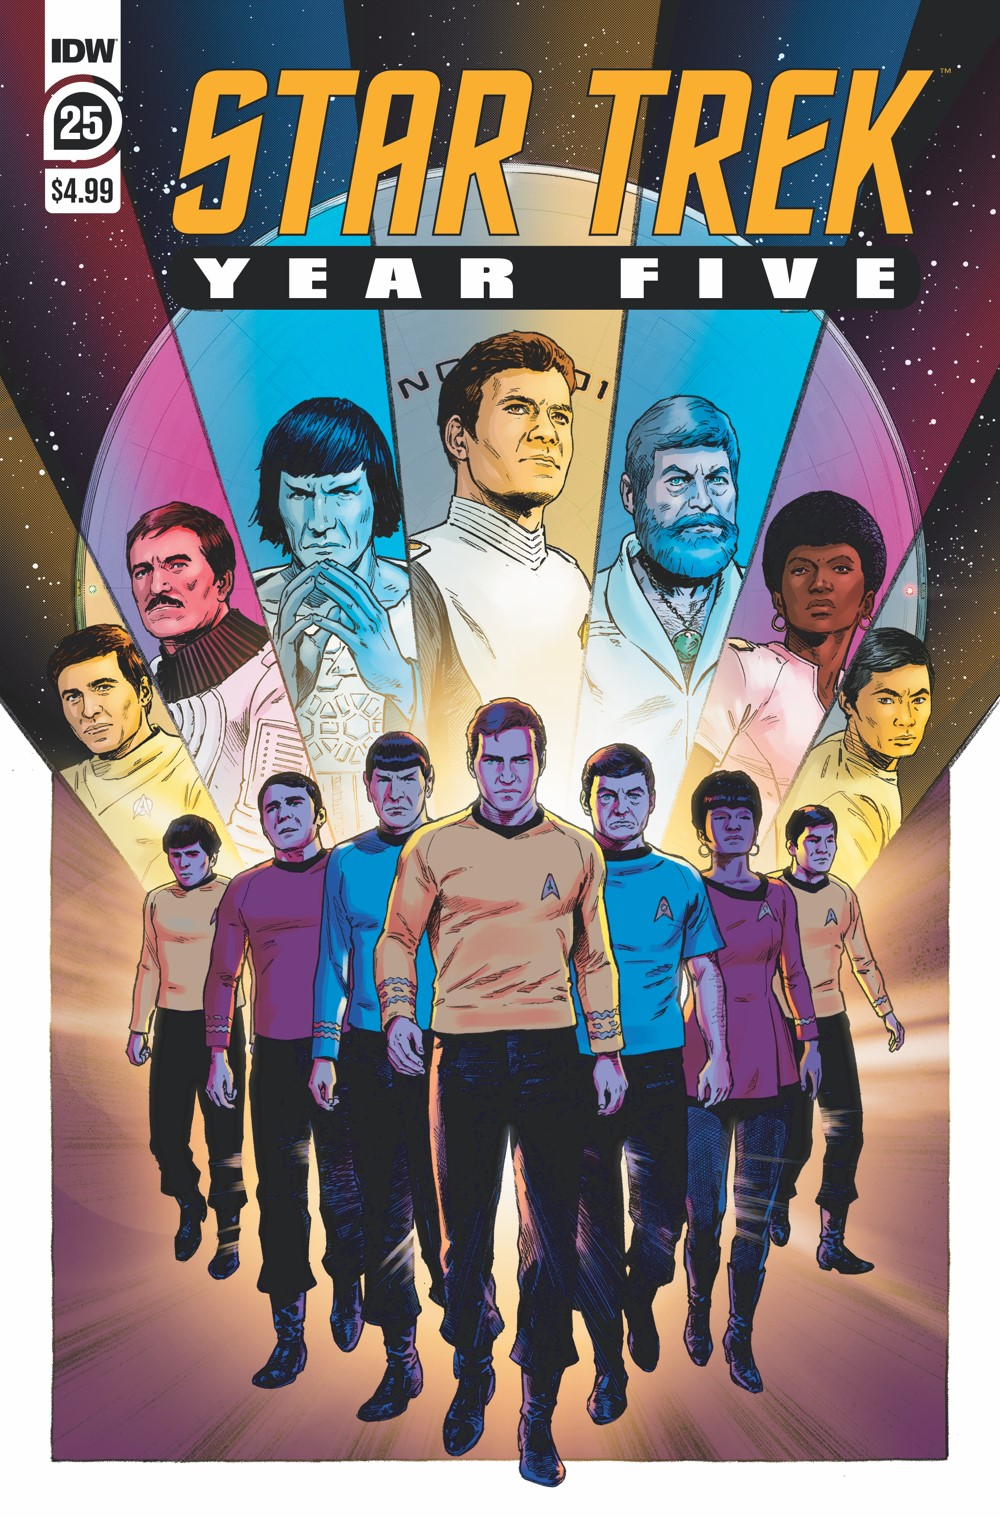 ST_YearFive25-cover ComicList Previews: STAR TREK YEAR FIVE #25